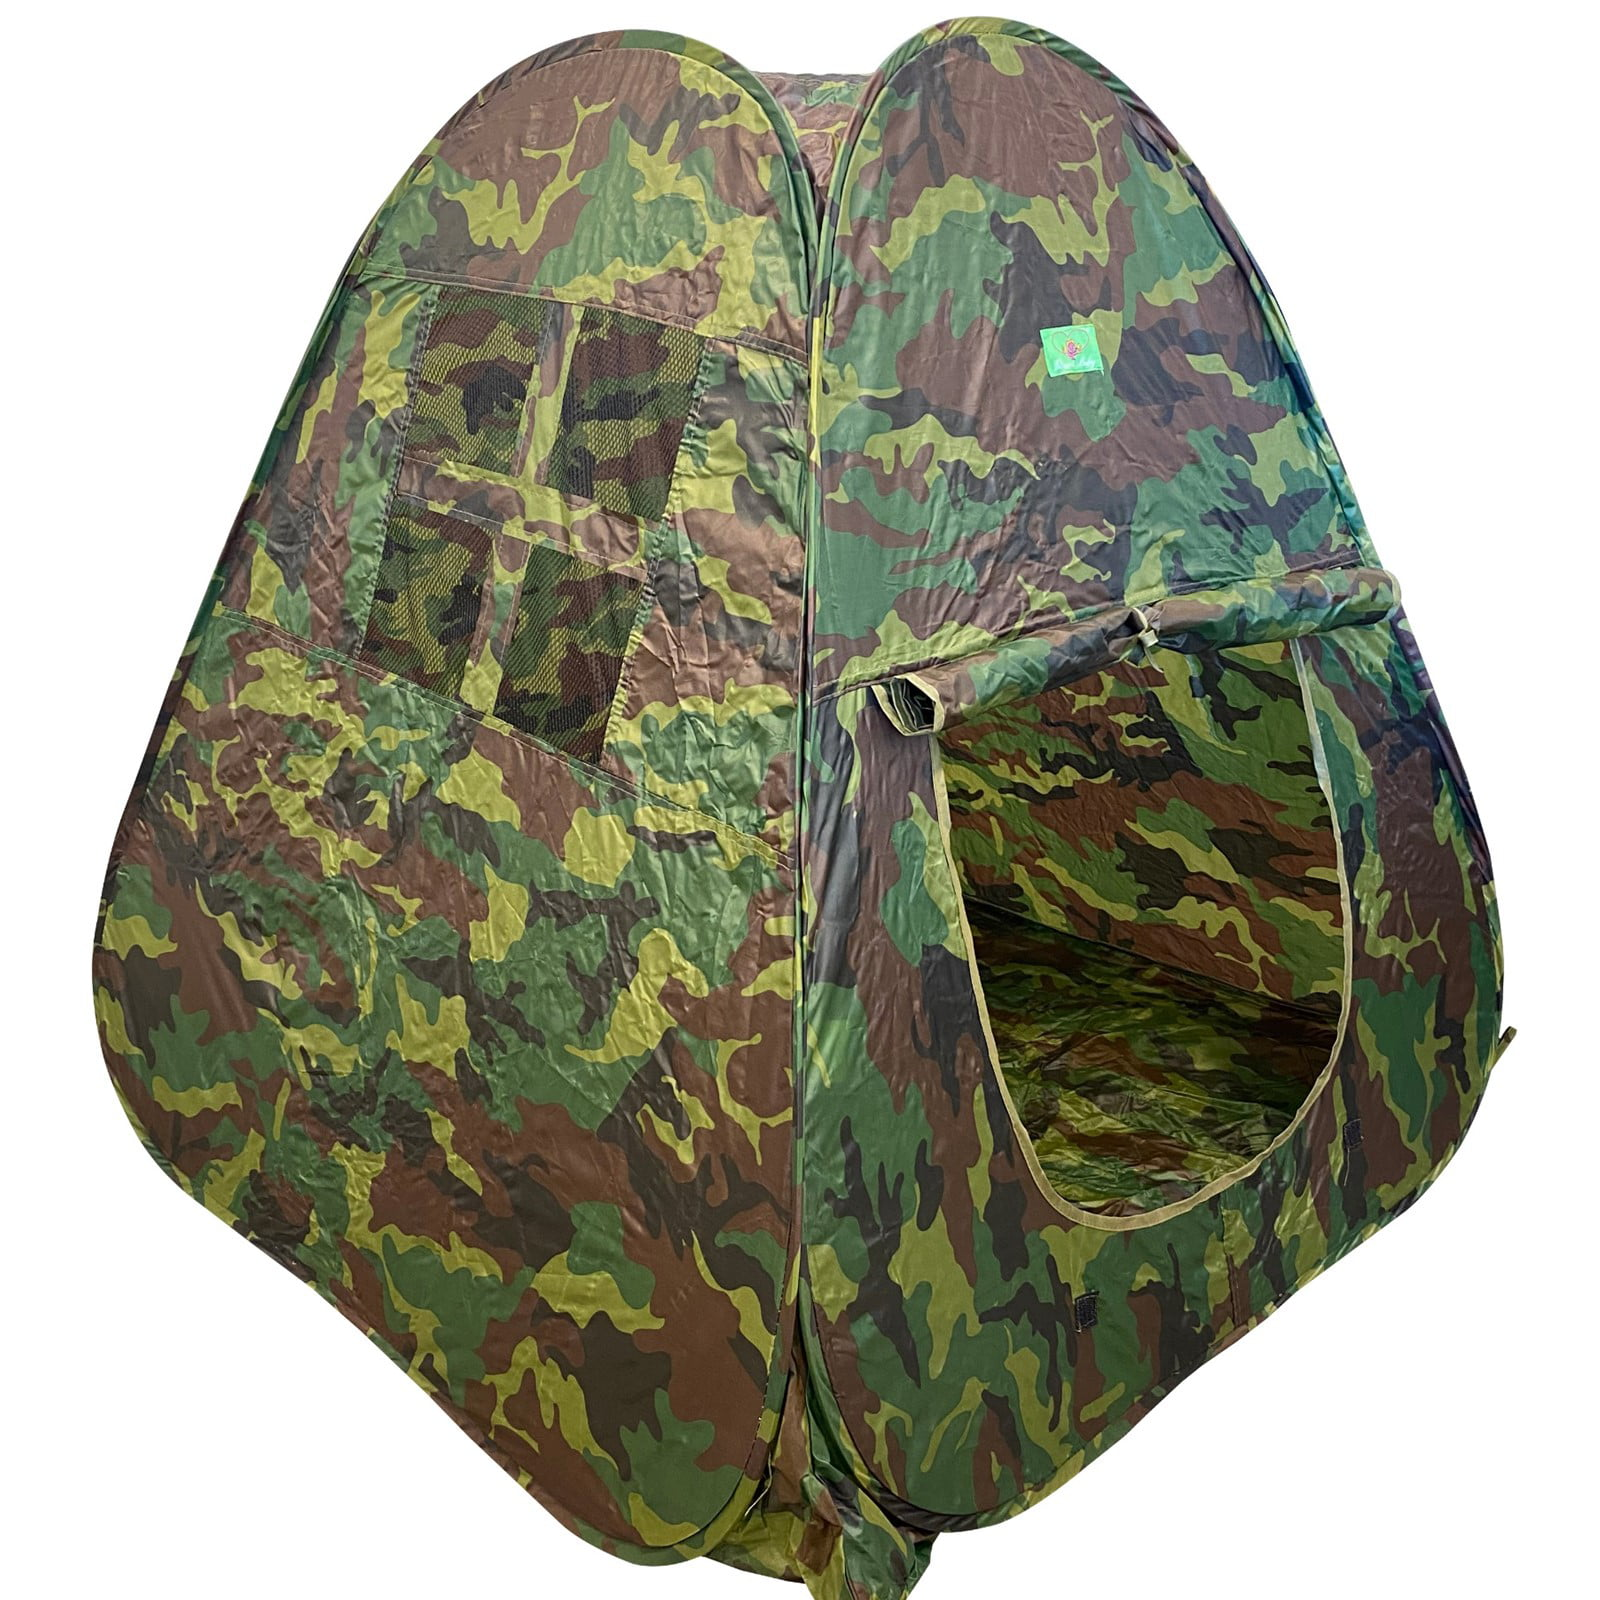 Pop Up Tent Playhouse Camouflage Tent Kids House TUNNEL ONLY Indoors Outdoors